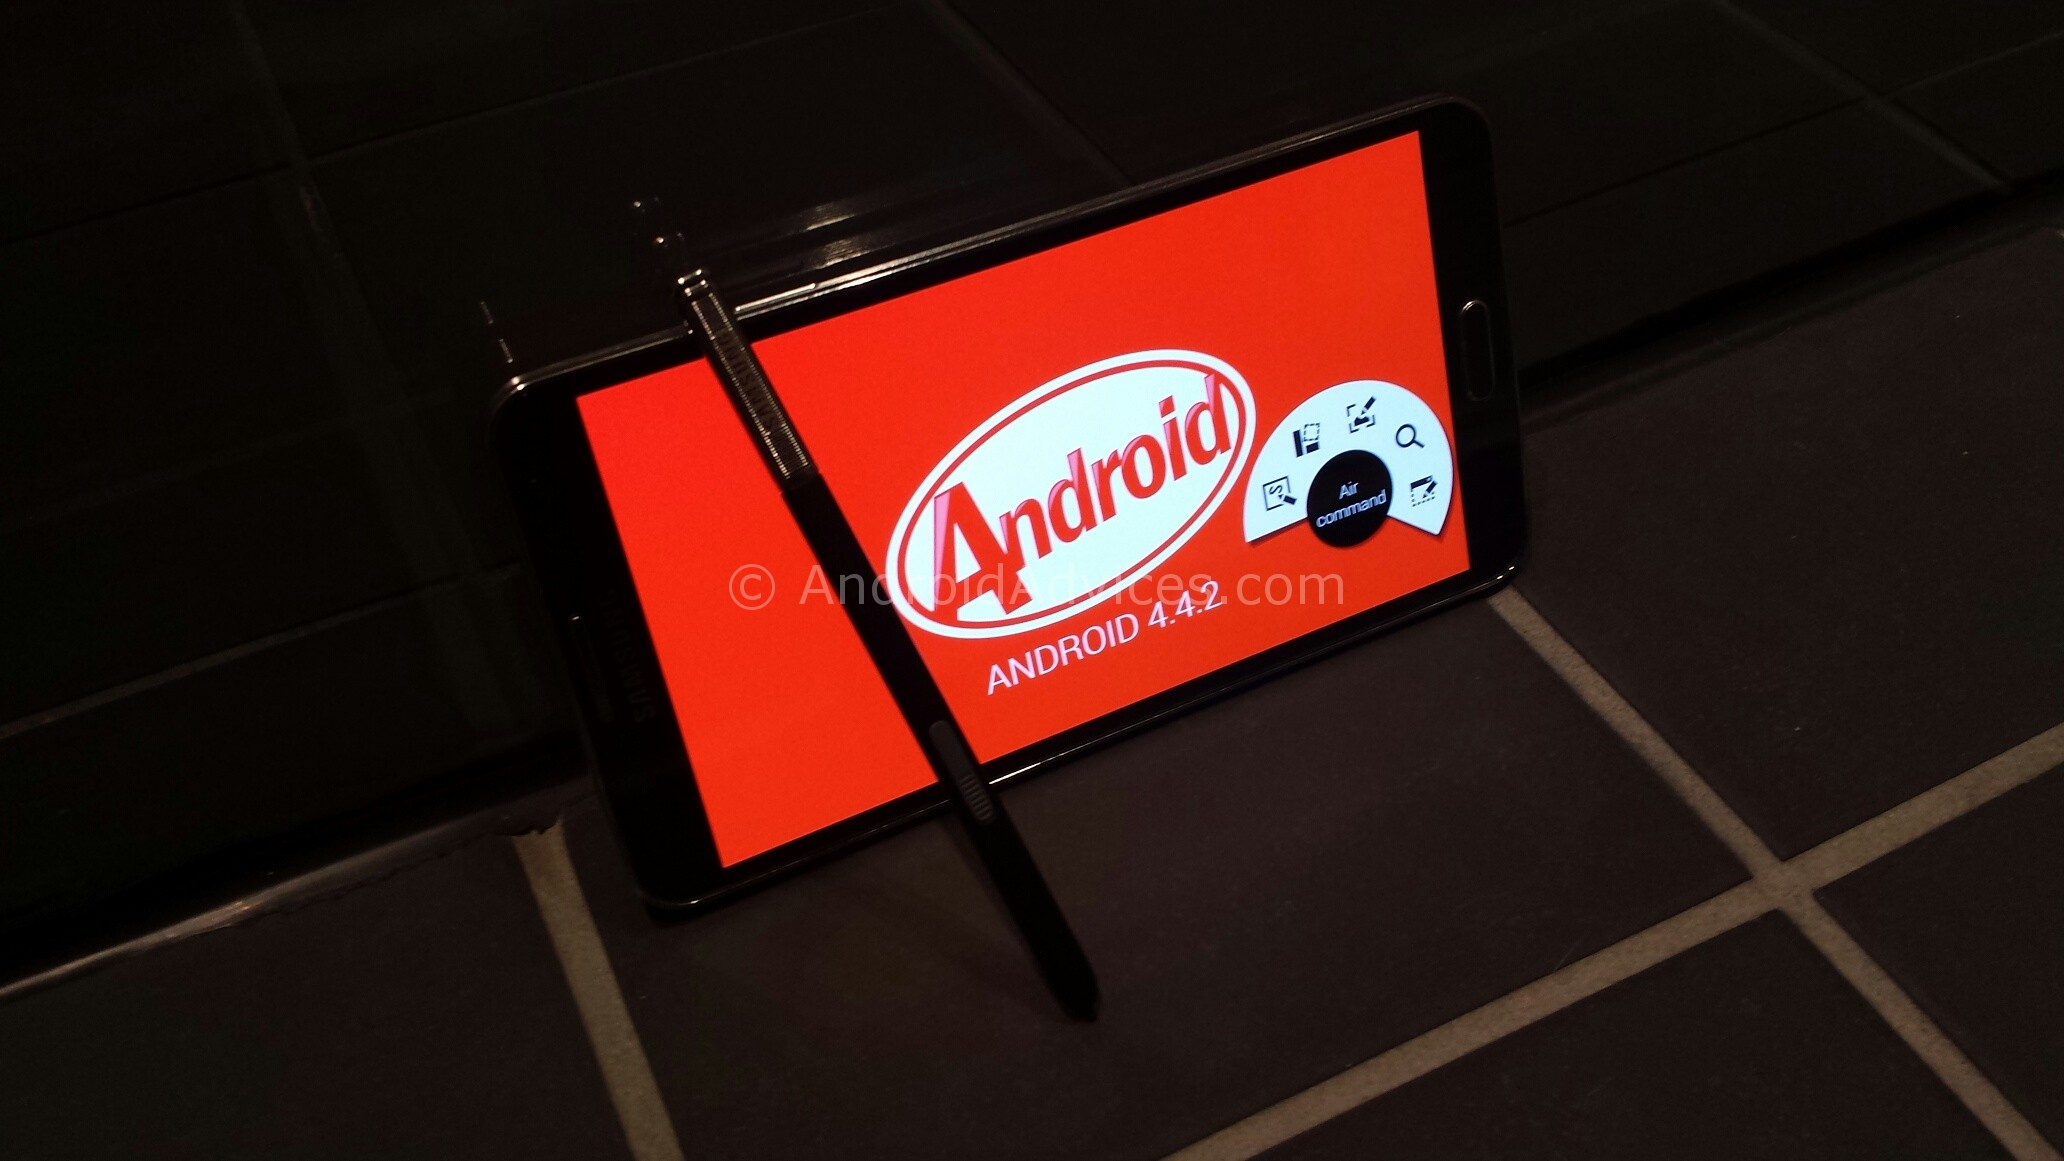 Samsung Galaxy Note 3 Android KitKat Update